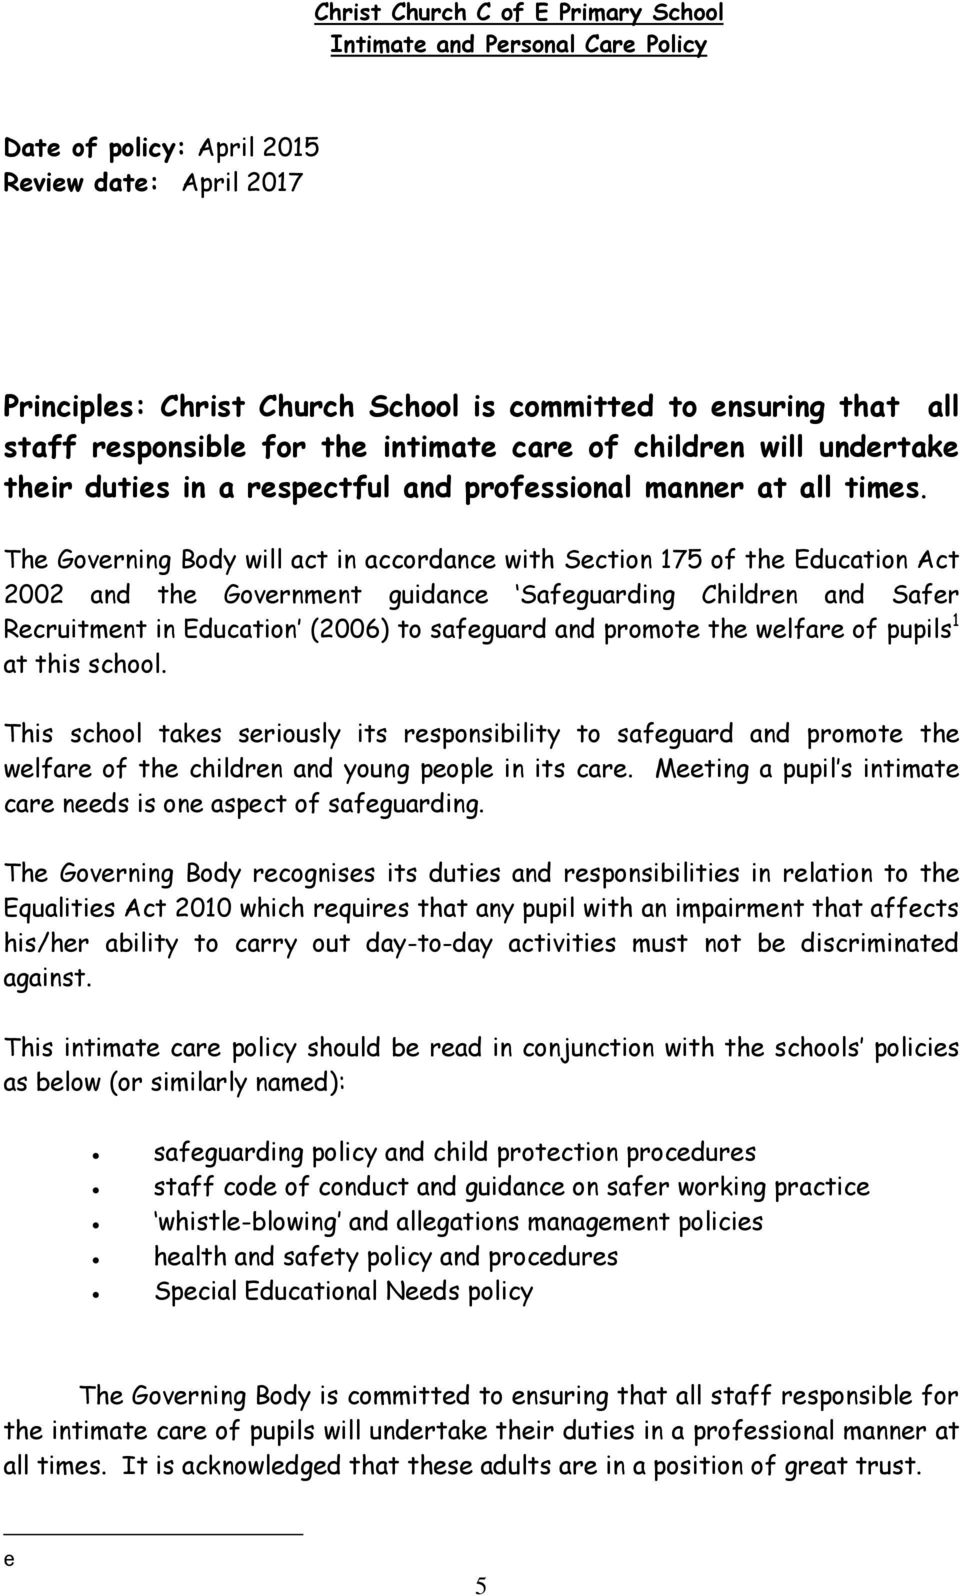 The Governing Body will act in accordance with Section 175 of the Education Act 2002 and the Government guidance Safeguarding Children and Safer Recruitment in Education (2006) to safeguard and